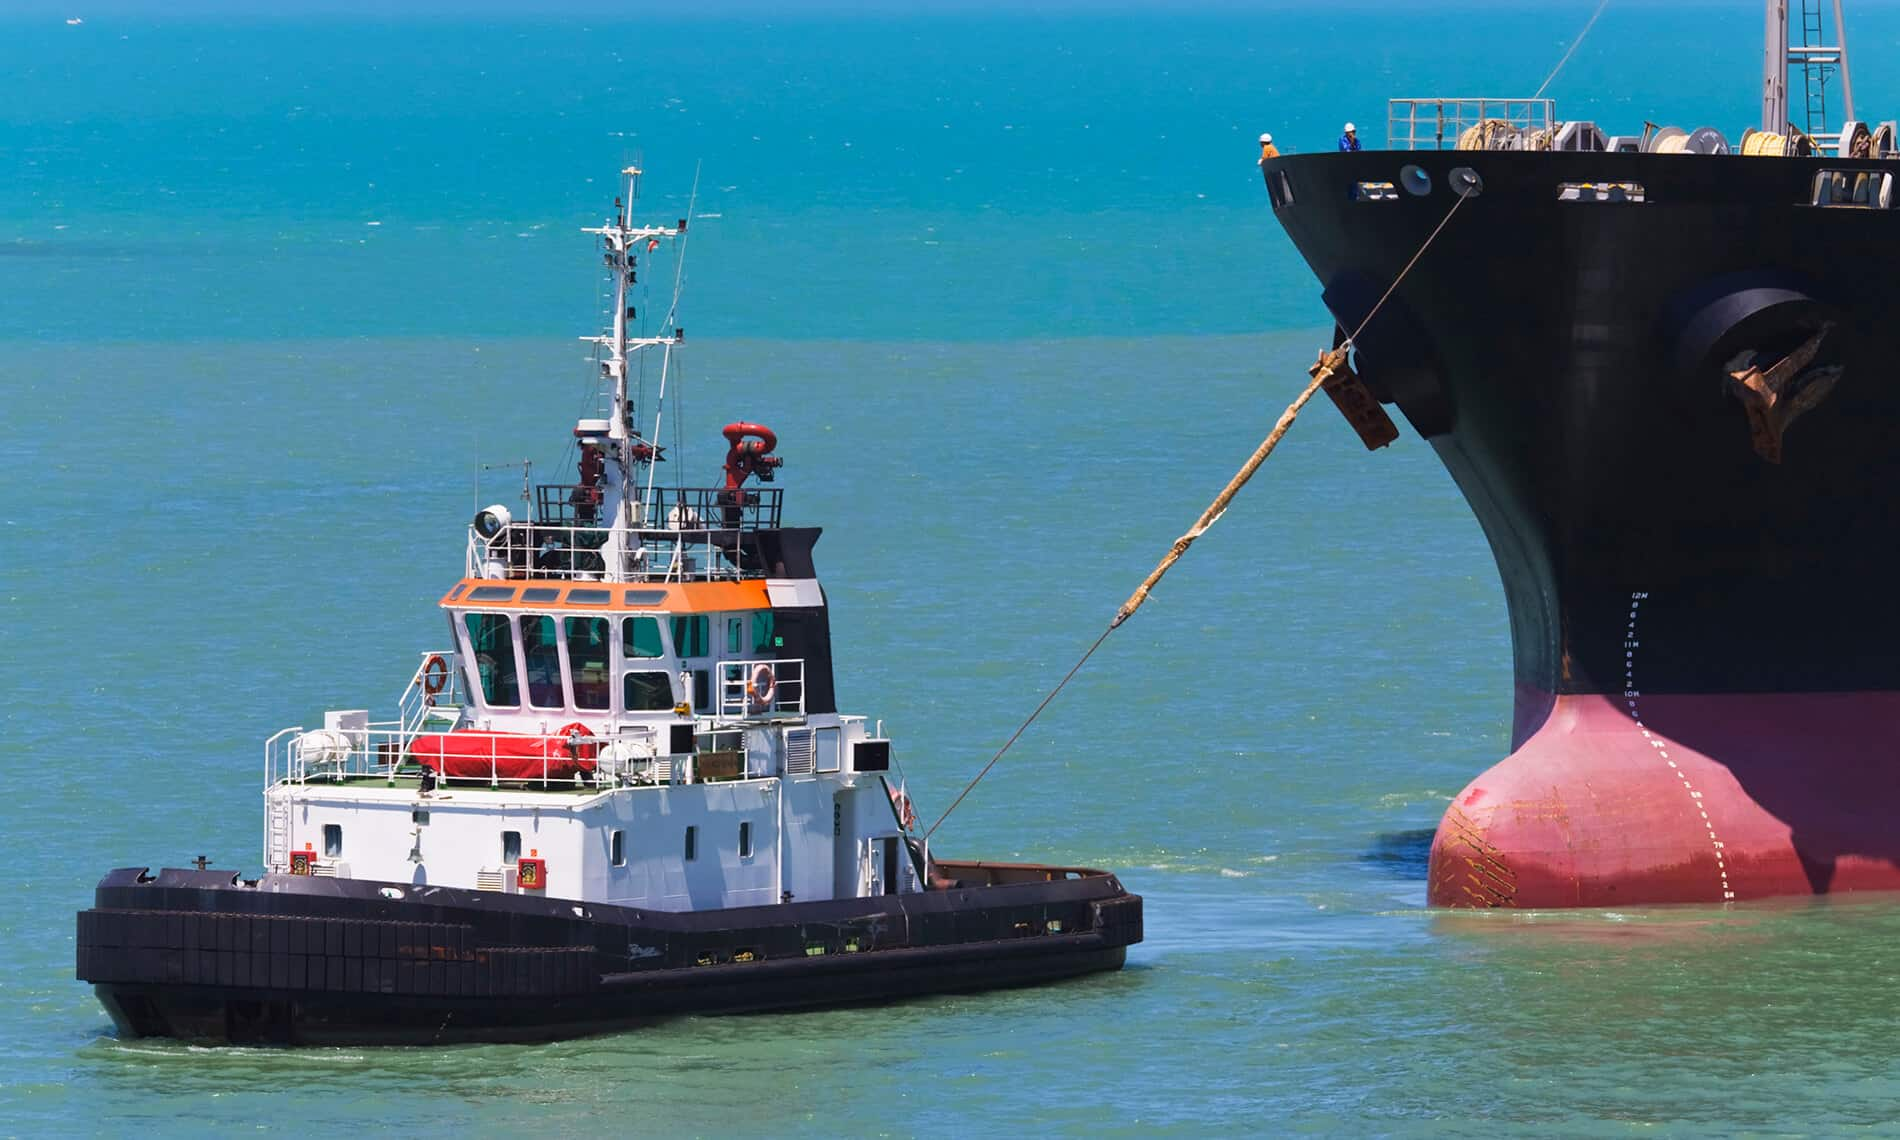 A little tug pulling this huge Cargo Ship behind it, both with shipping loans